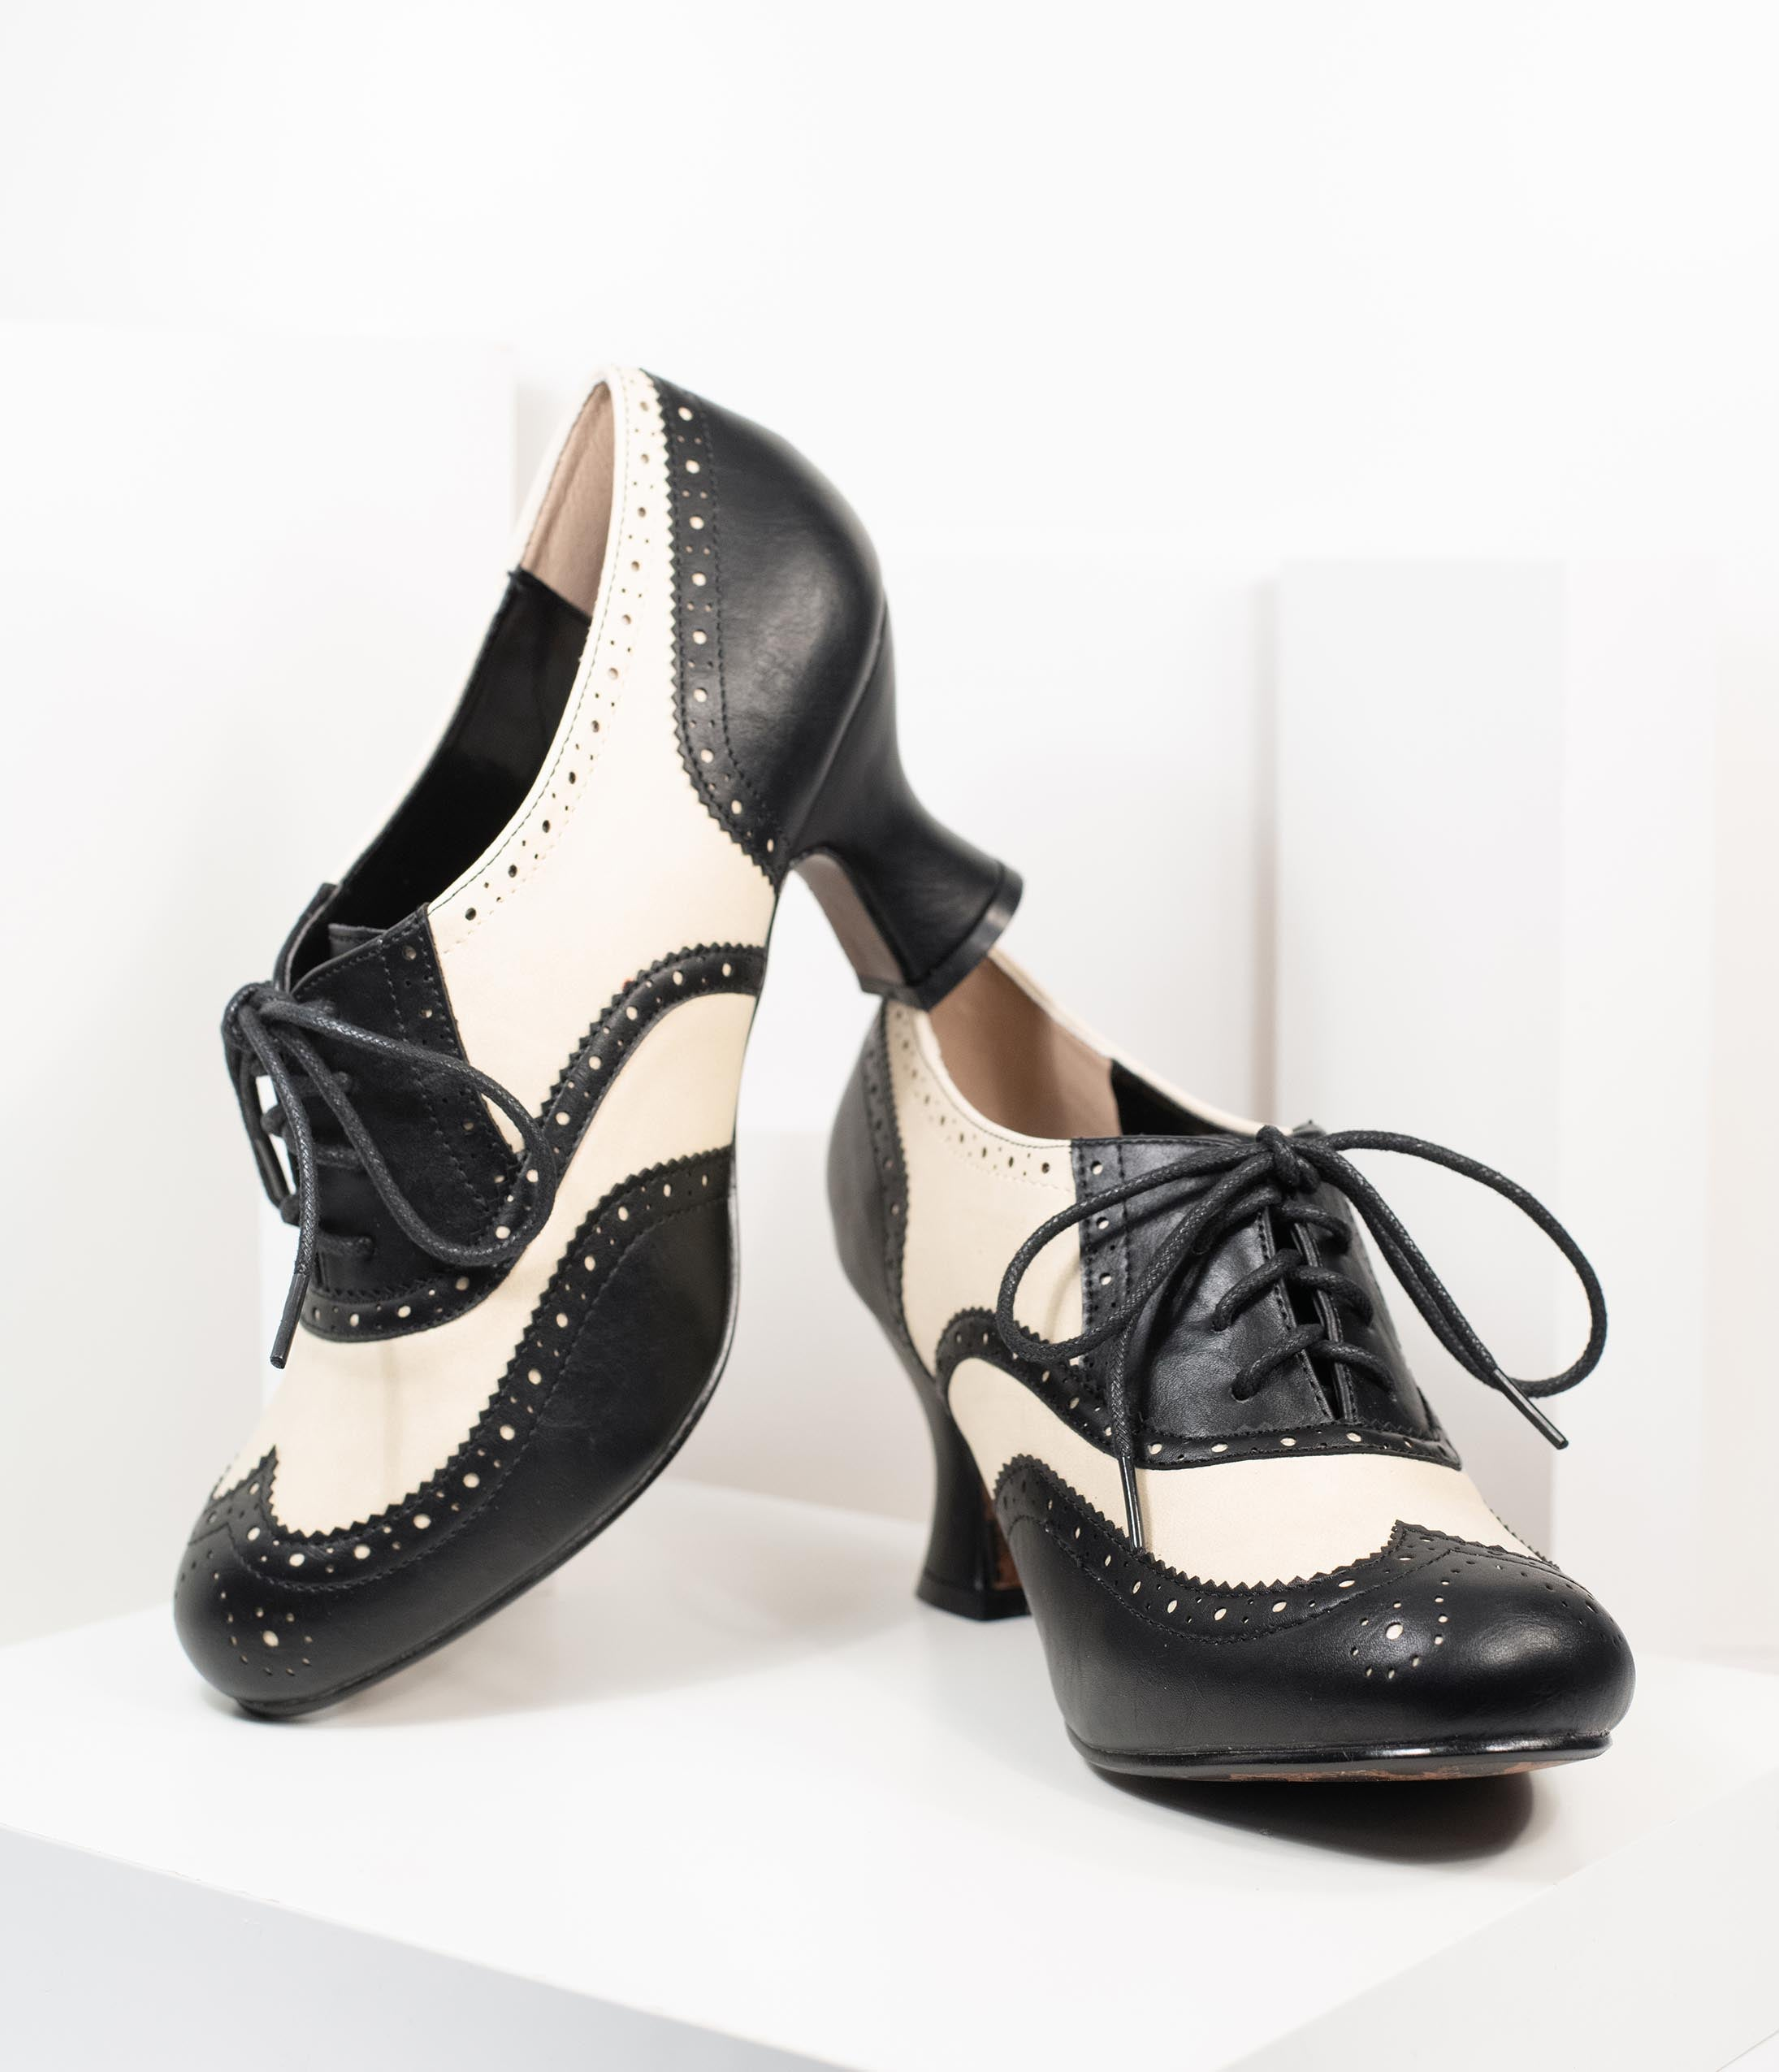 Vintage Shoes, Vintage Style Shoes Bettie Page Black  Ivory Leatherette Patricia Oxford Heels $82.00 AT vintagedancer.com